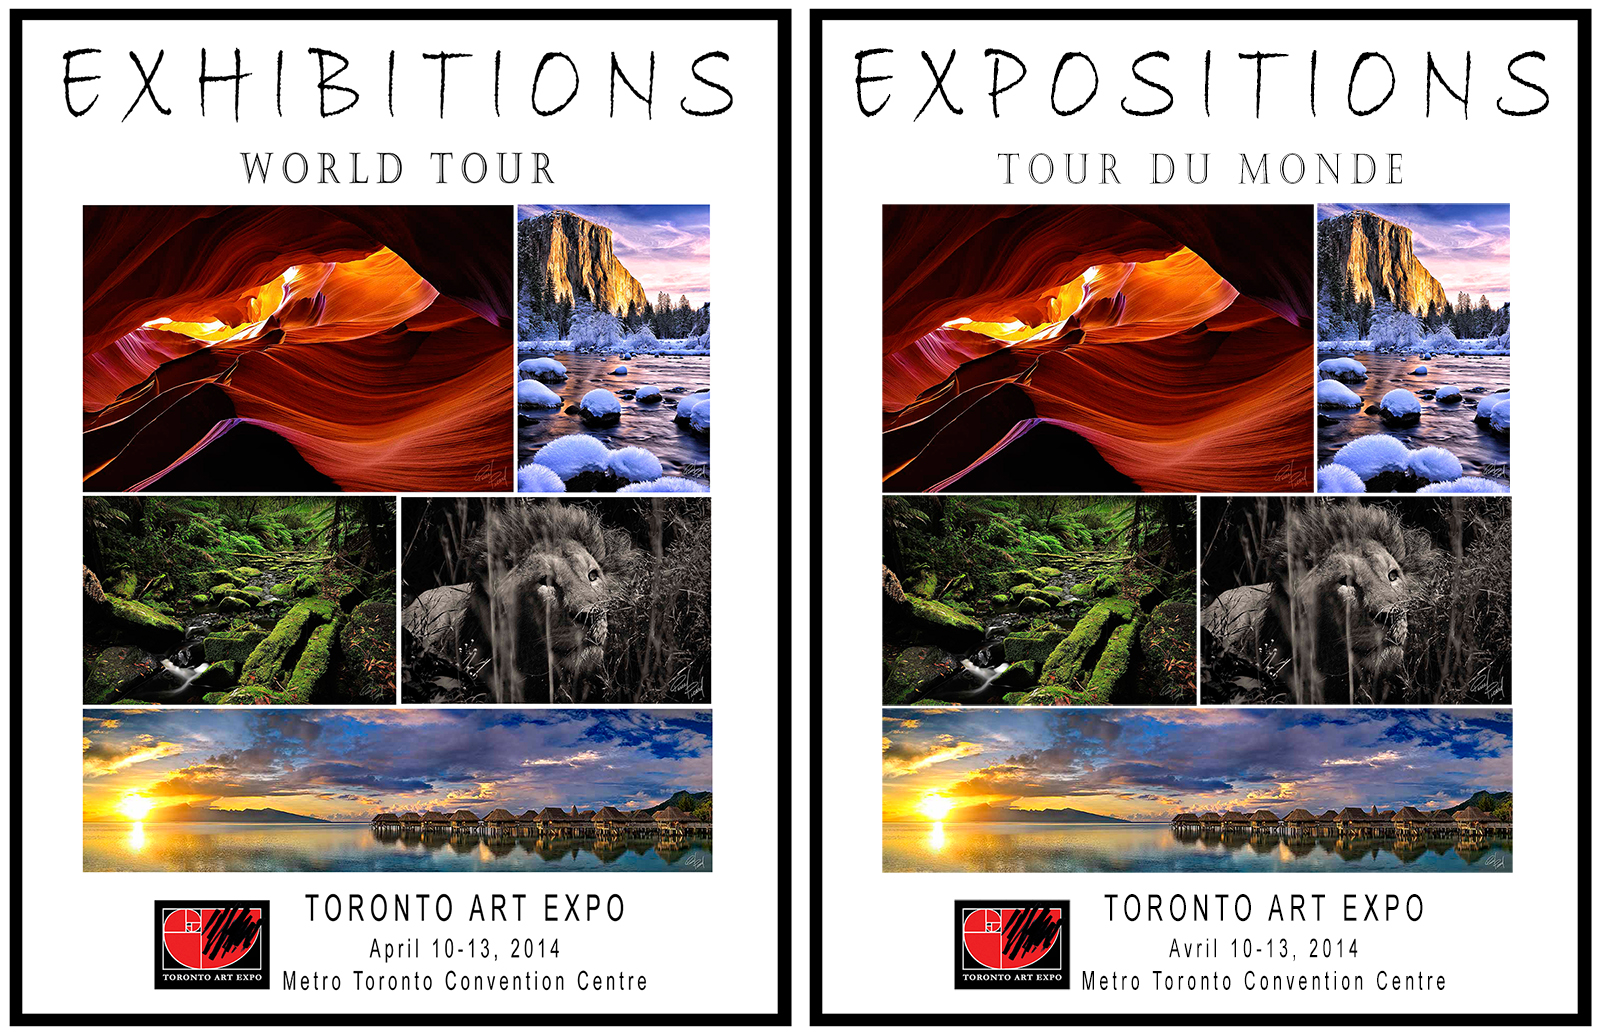 EXHIBITONS-EXPOSITION TAE